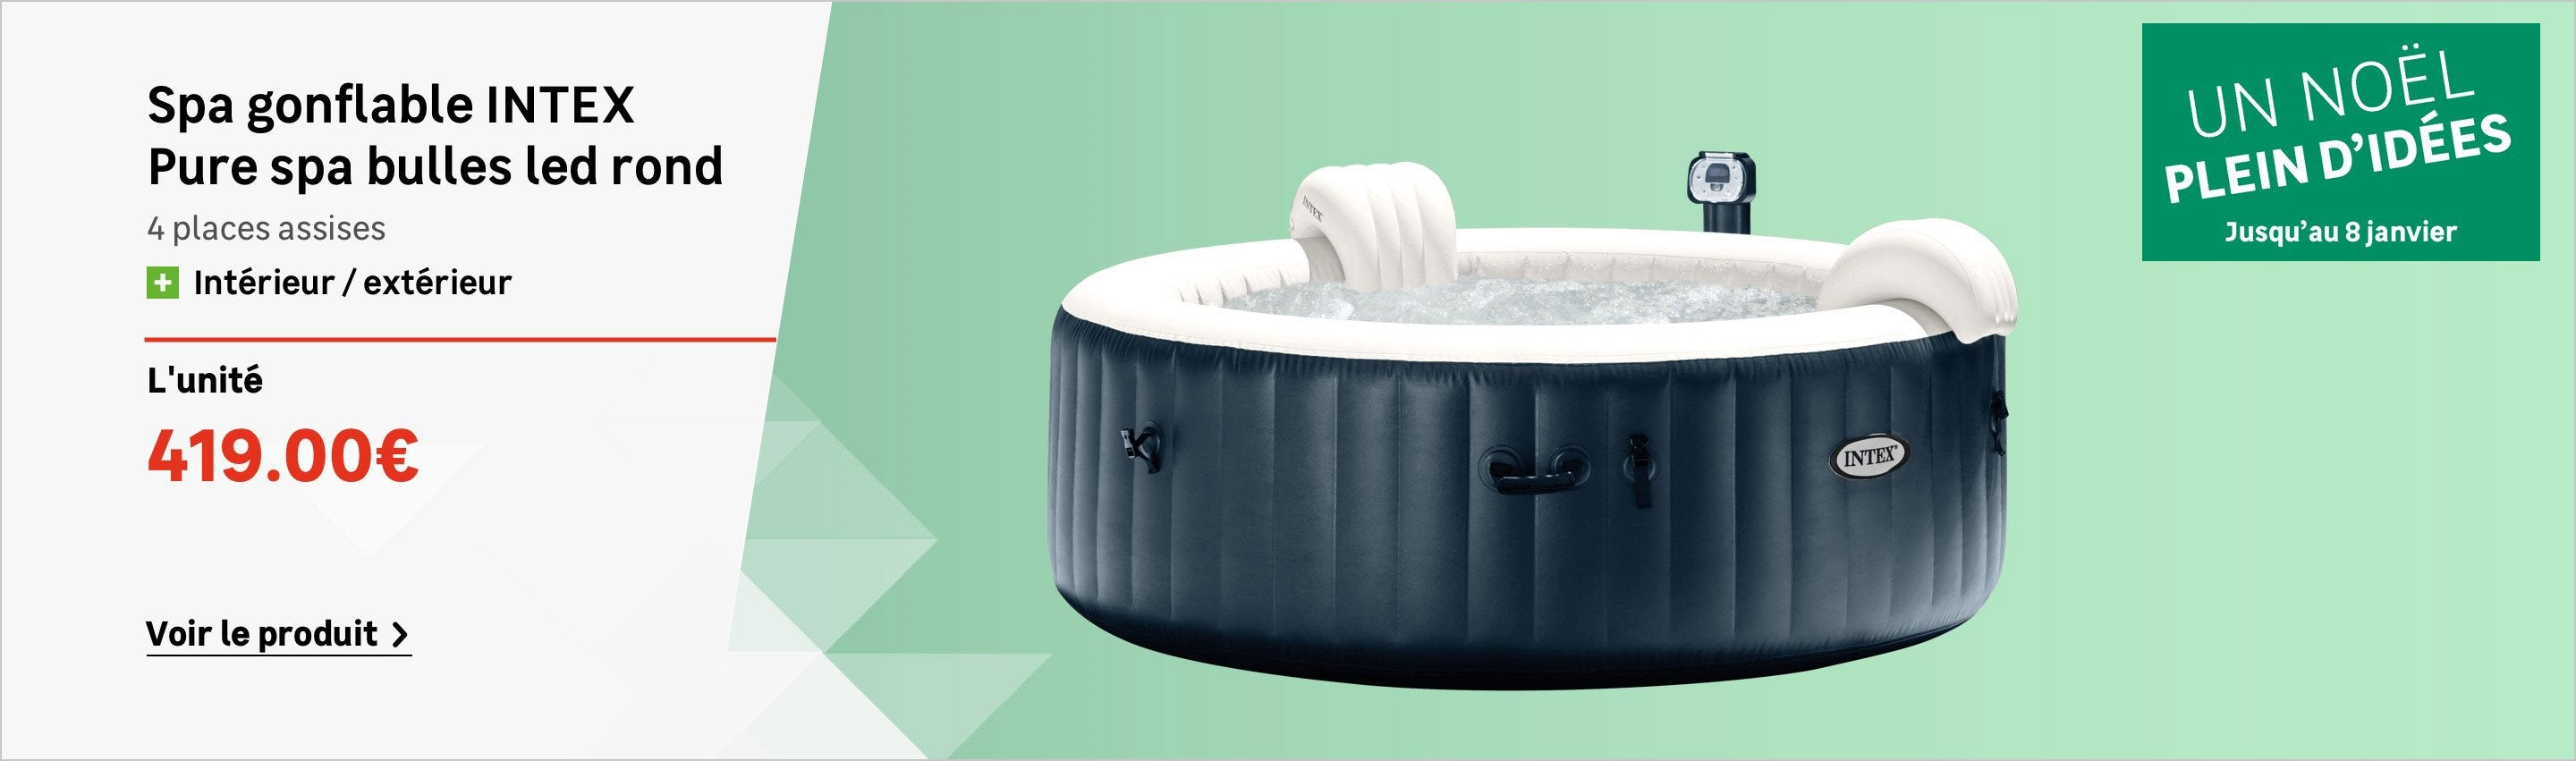 Entretien Spa Gonflable Intex Cool Couvercle Gonflable Pour Spa